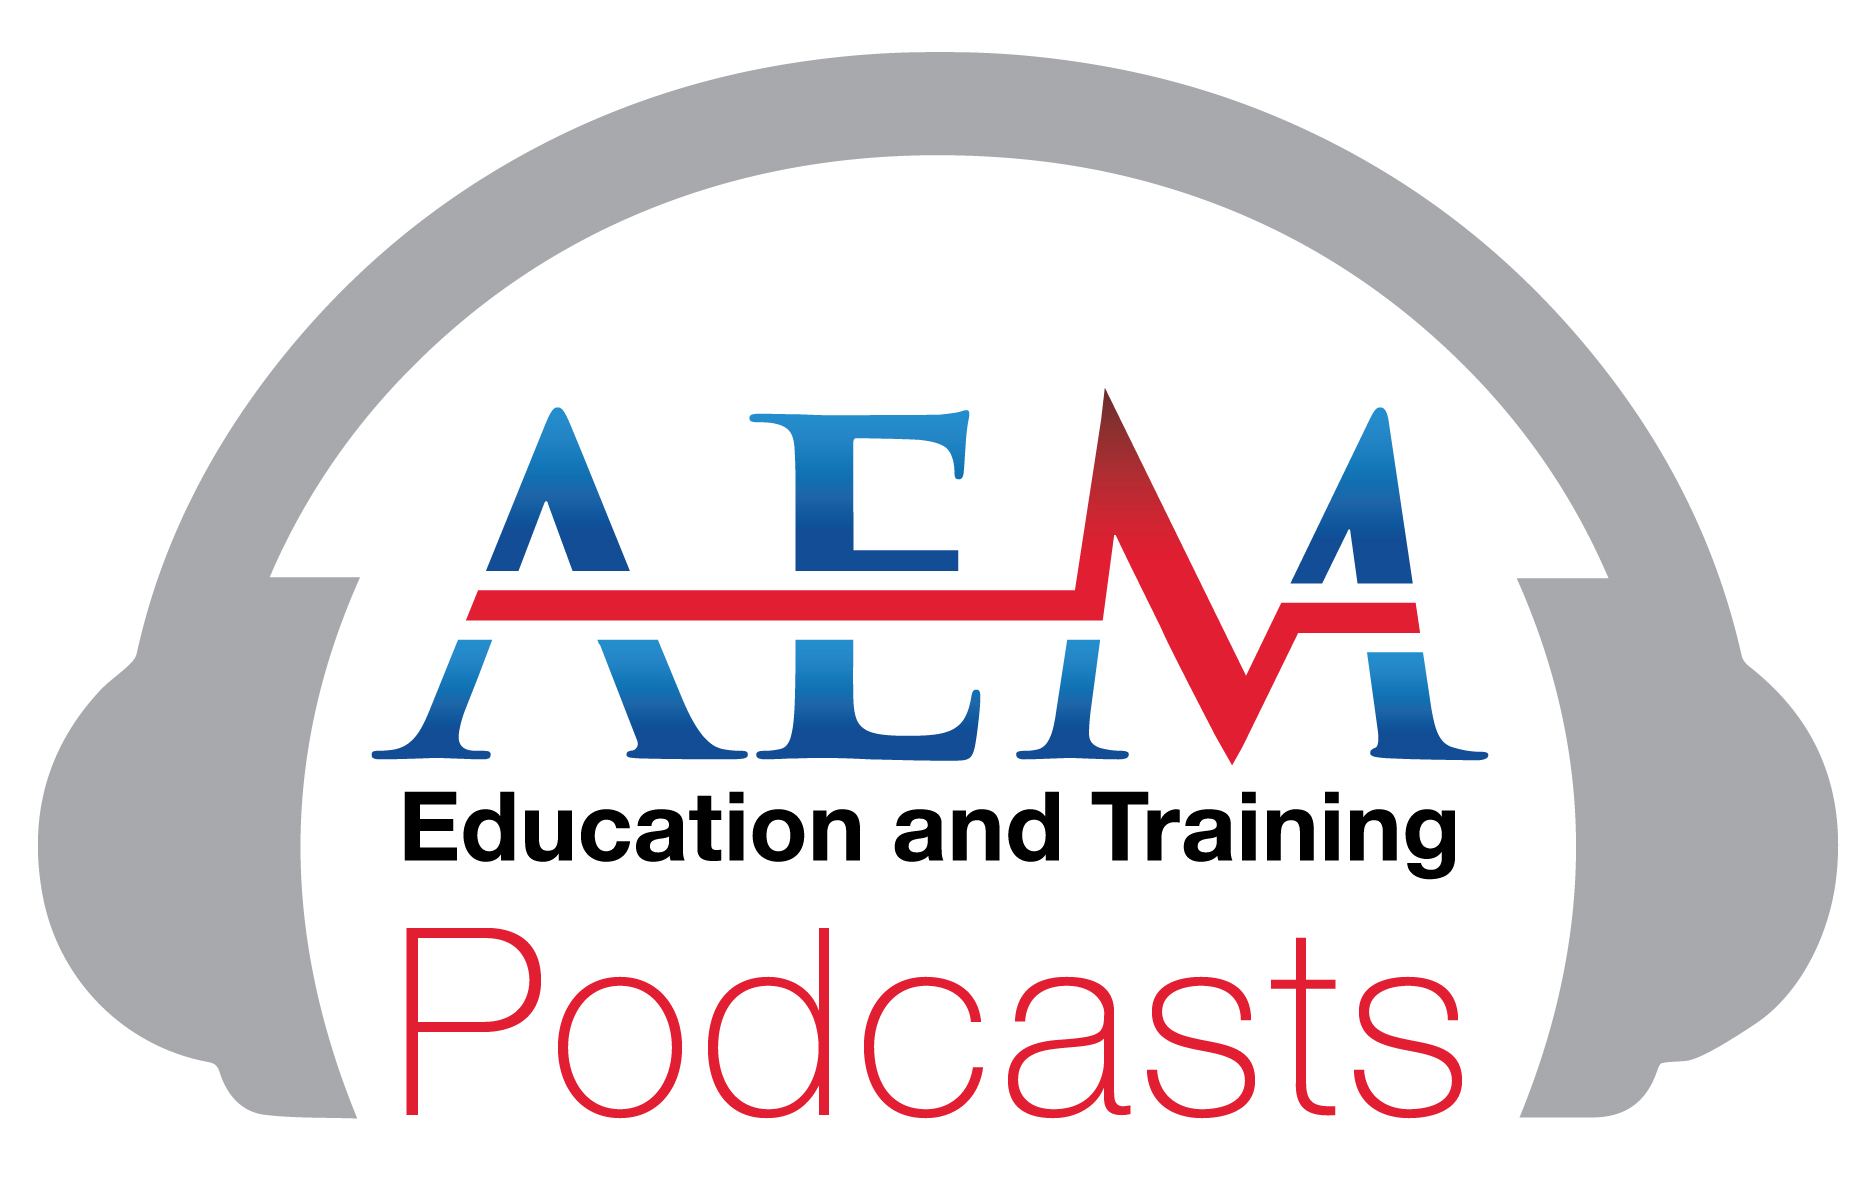 AEM E and T Podcasts logo